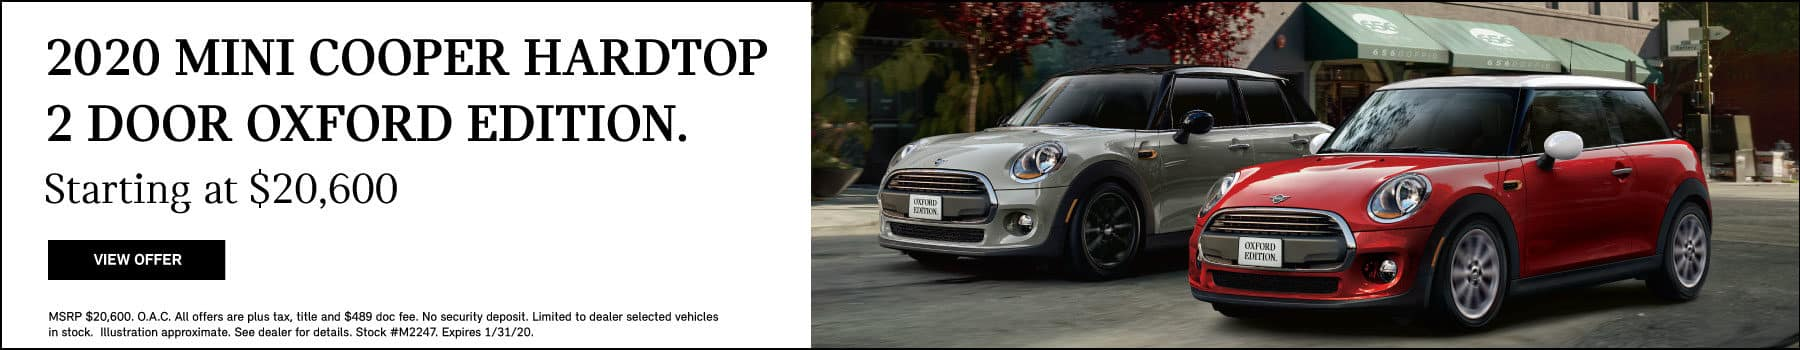 2020 MINI Cooper Hardtop 2 Door Oxford Edition.  Starting at $20,600. View Offer